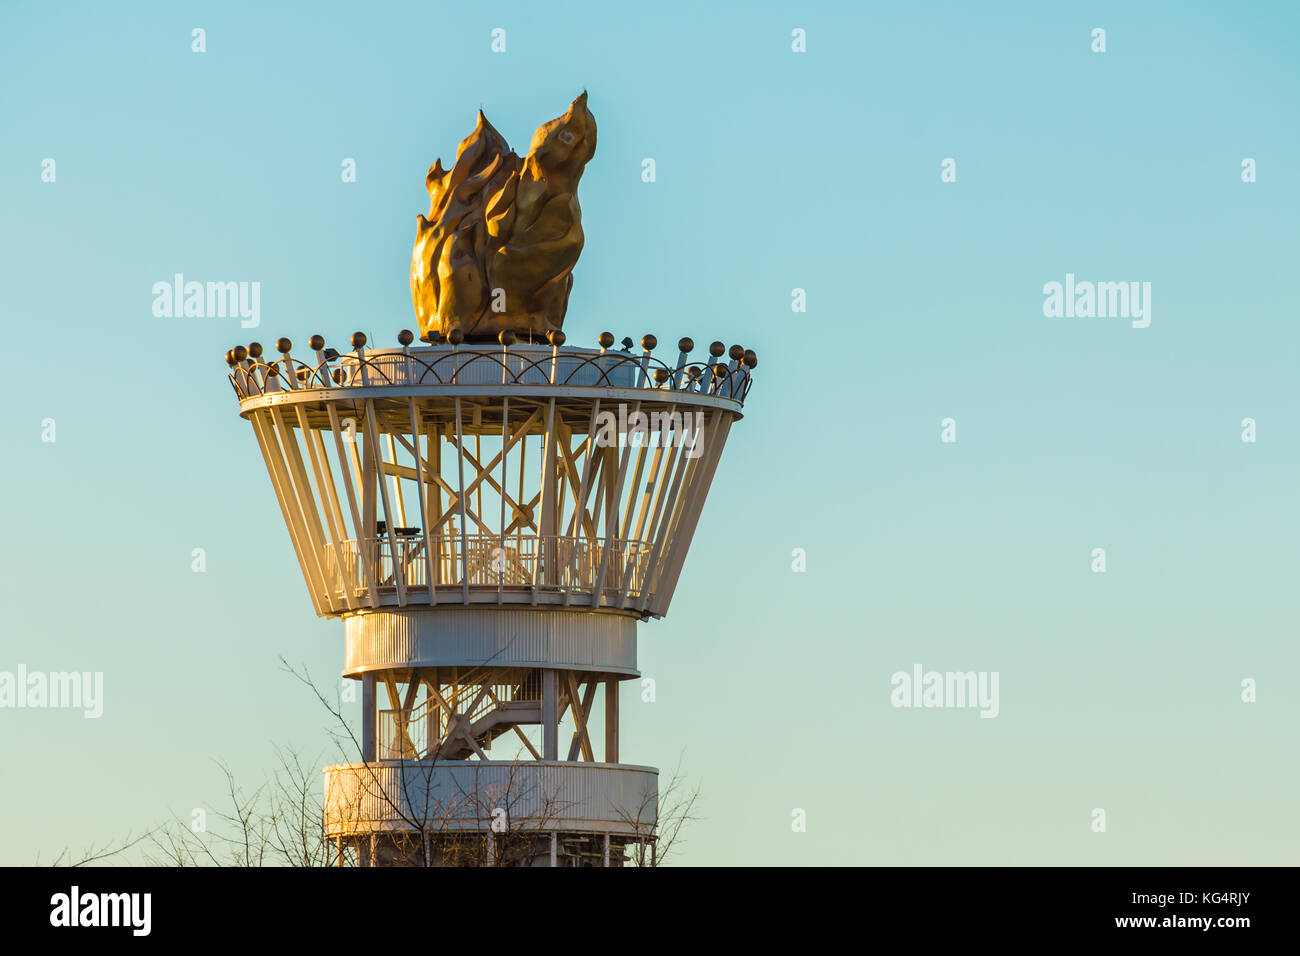 Atlanta Olympic Torch Tower closeup on the background of clear sky at sunset - Stock Image